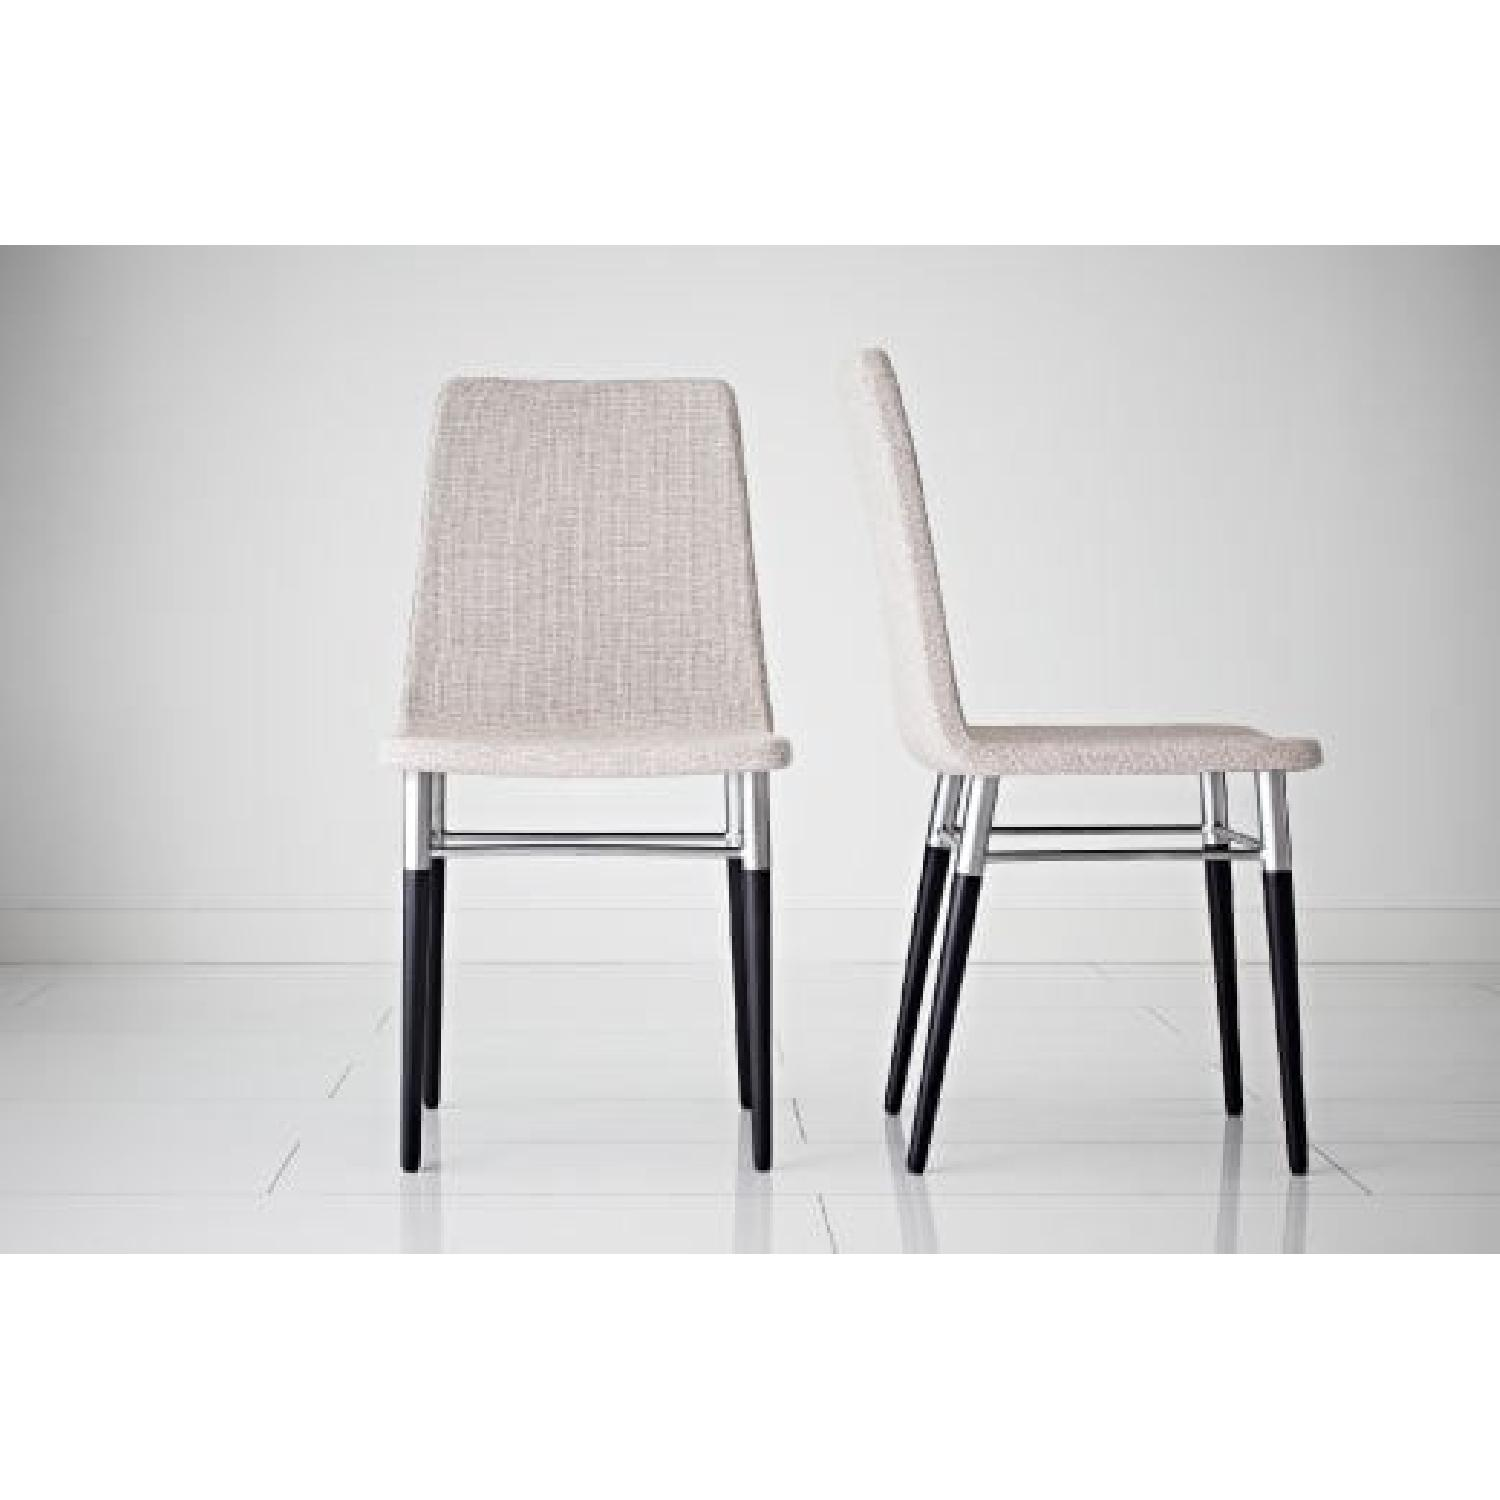 Ikea Preben Dining Chairs - image-1